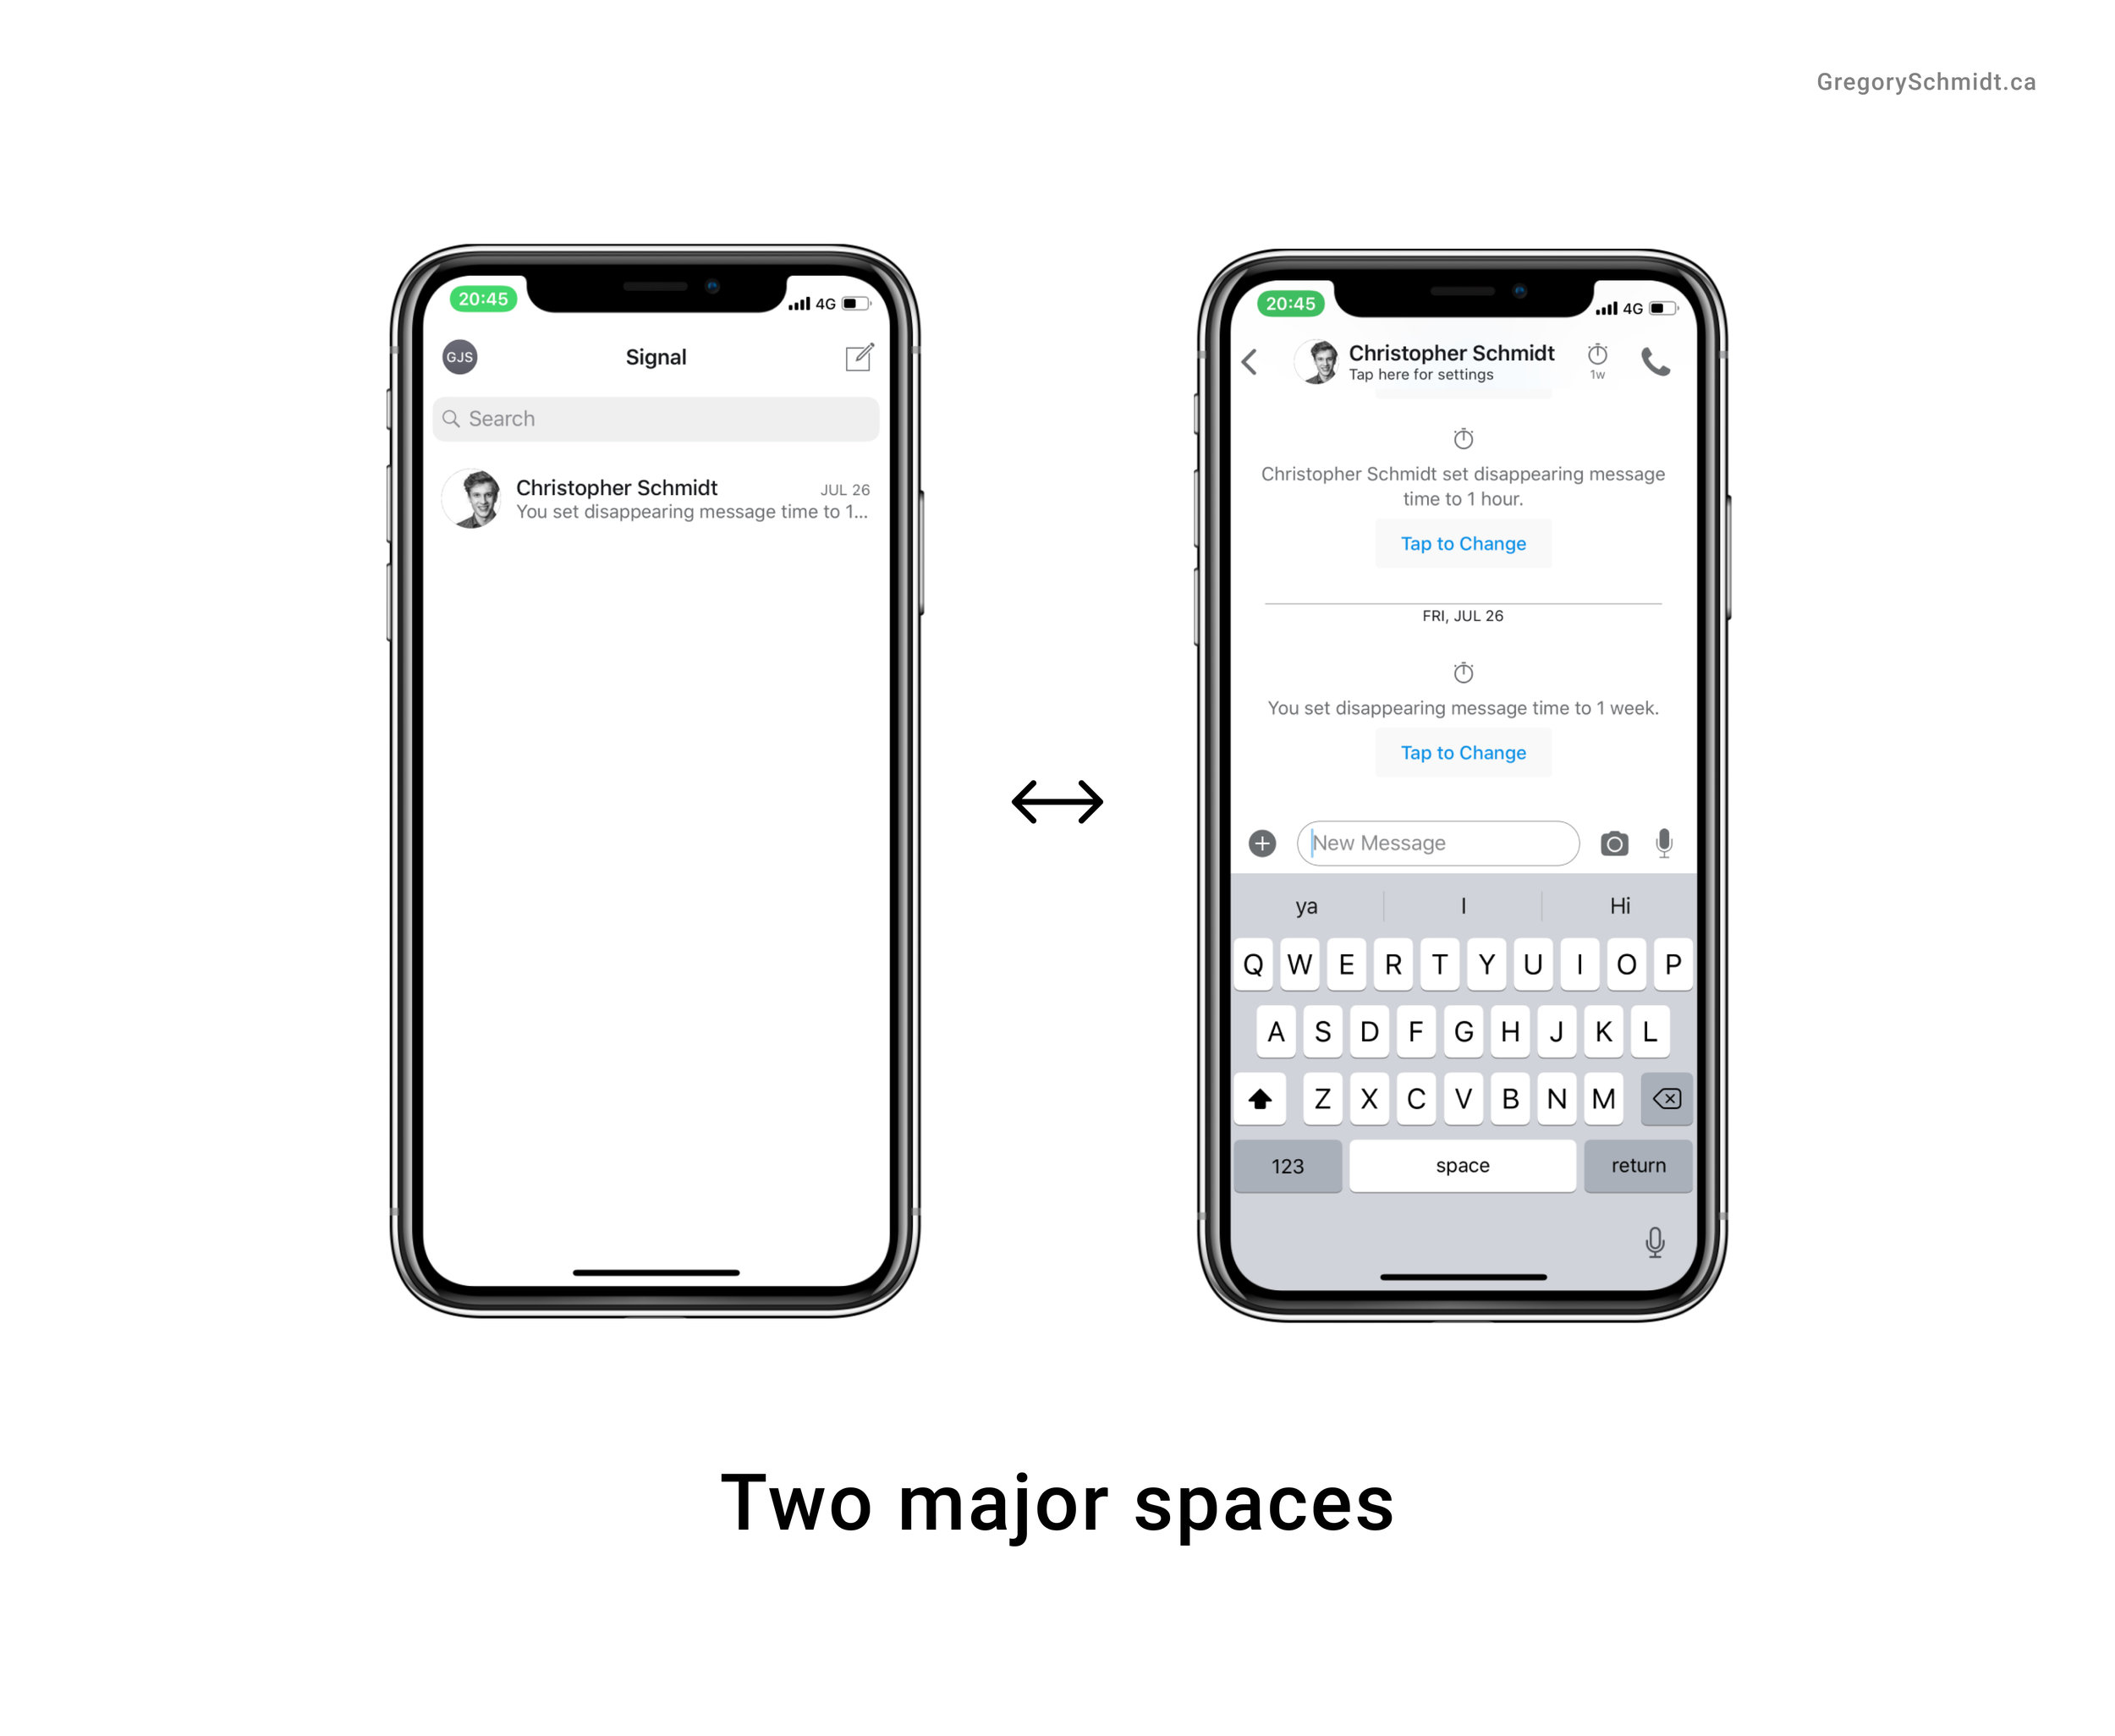 two major spaces side-by-side